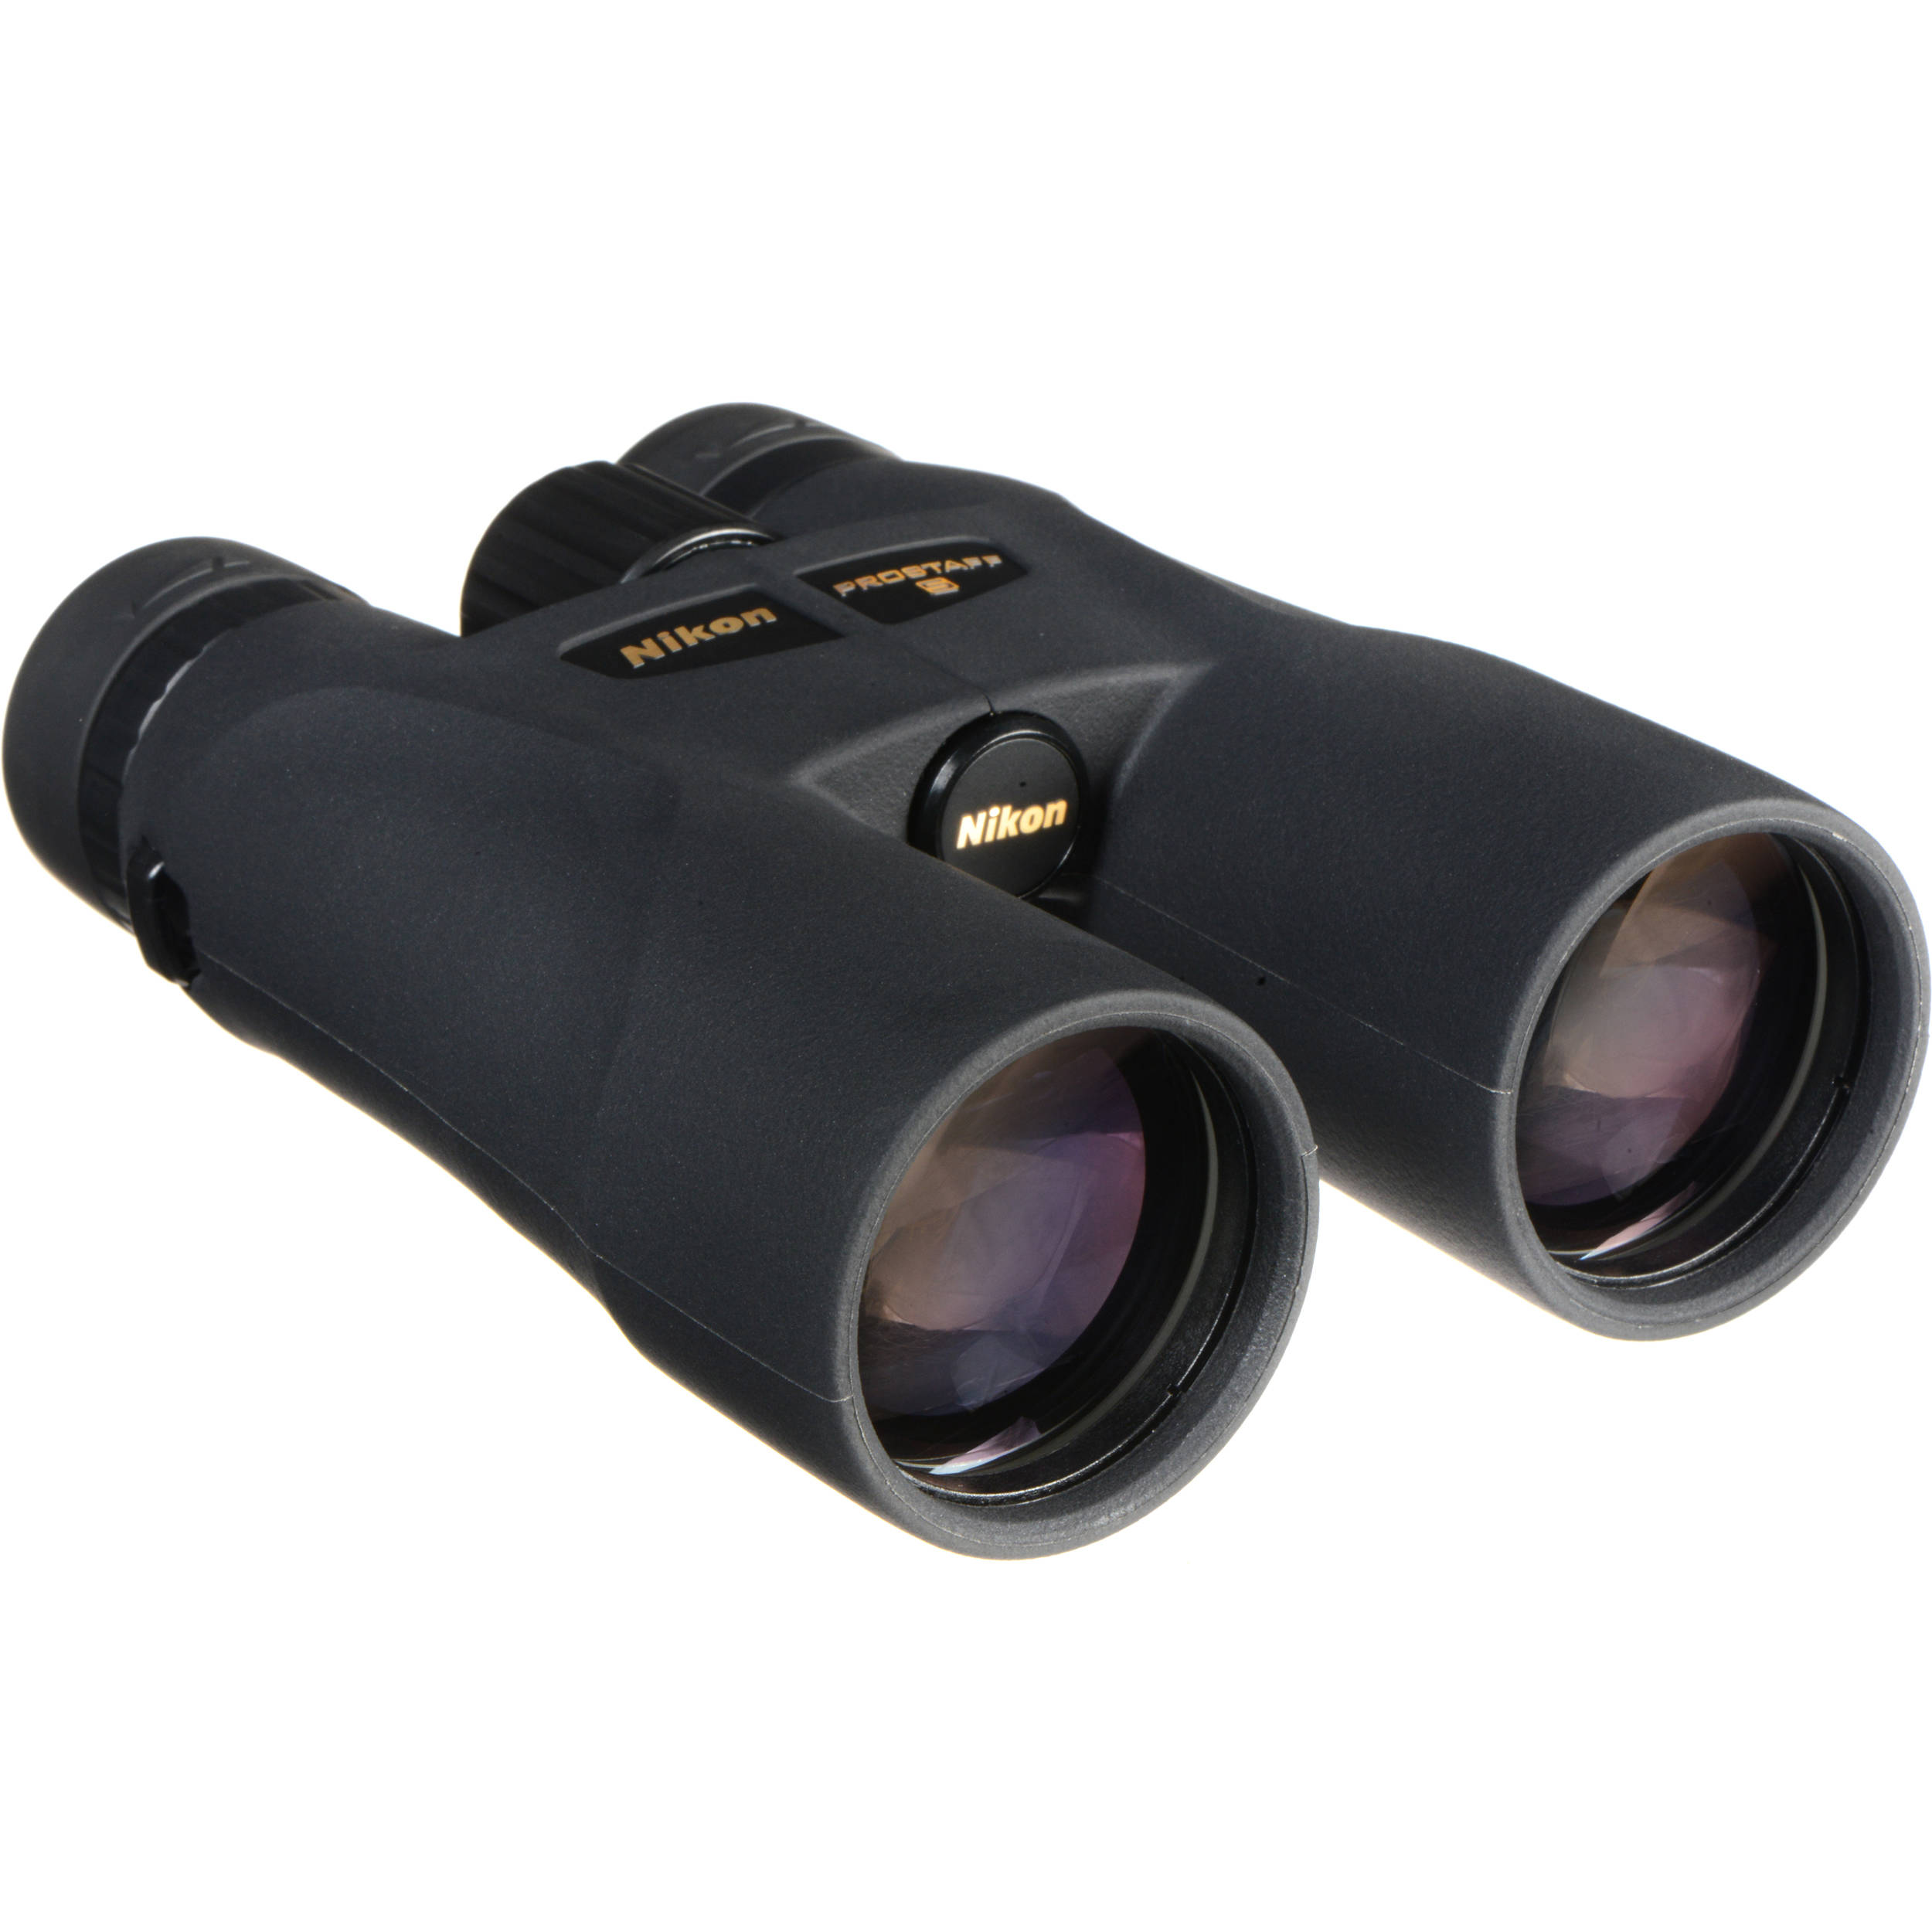 how to stop shaking with binoculars